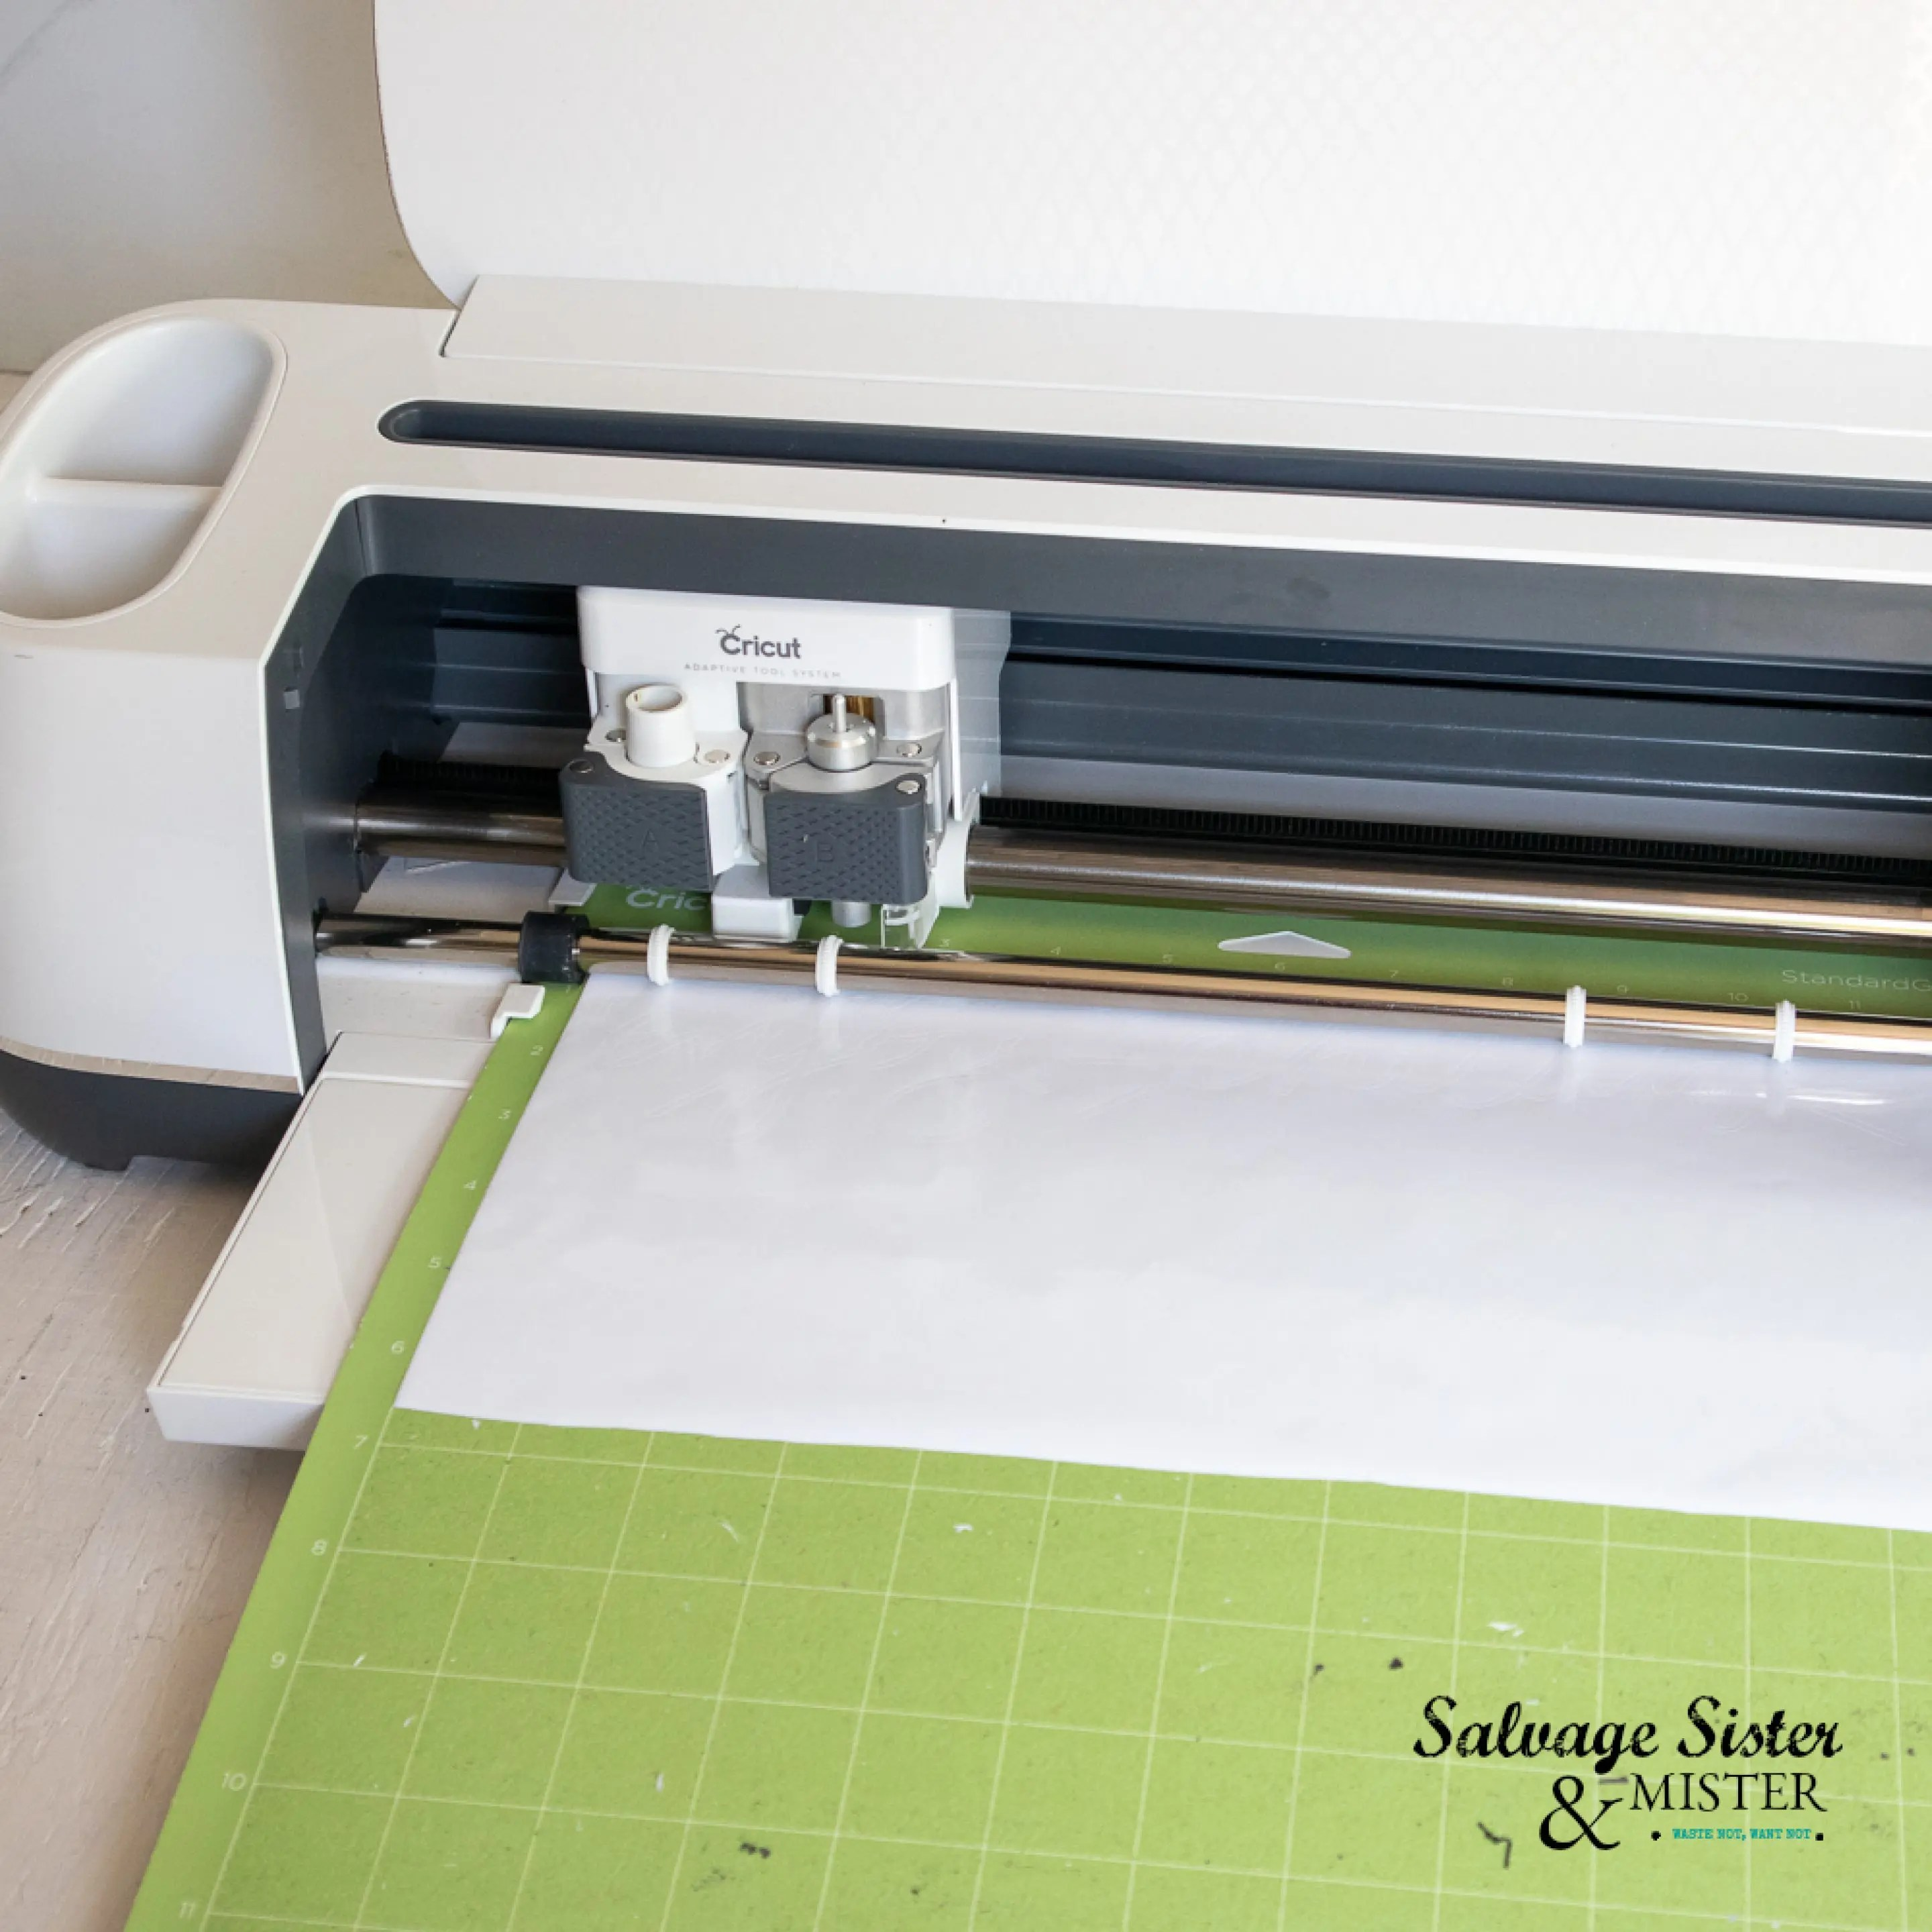 Cutting vinyl letters with a Cricut